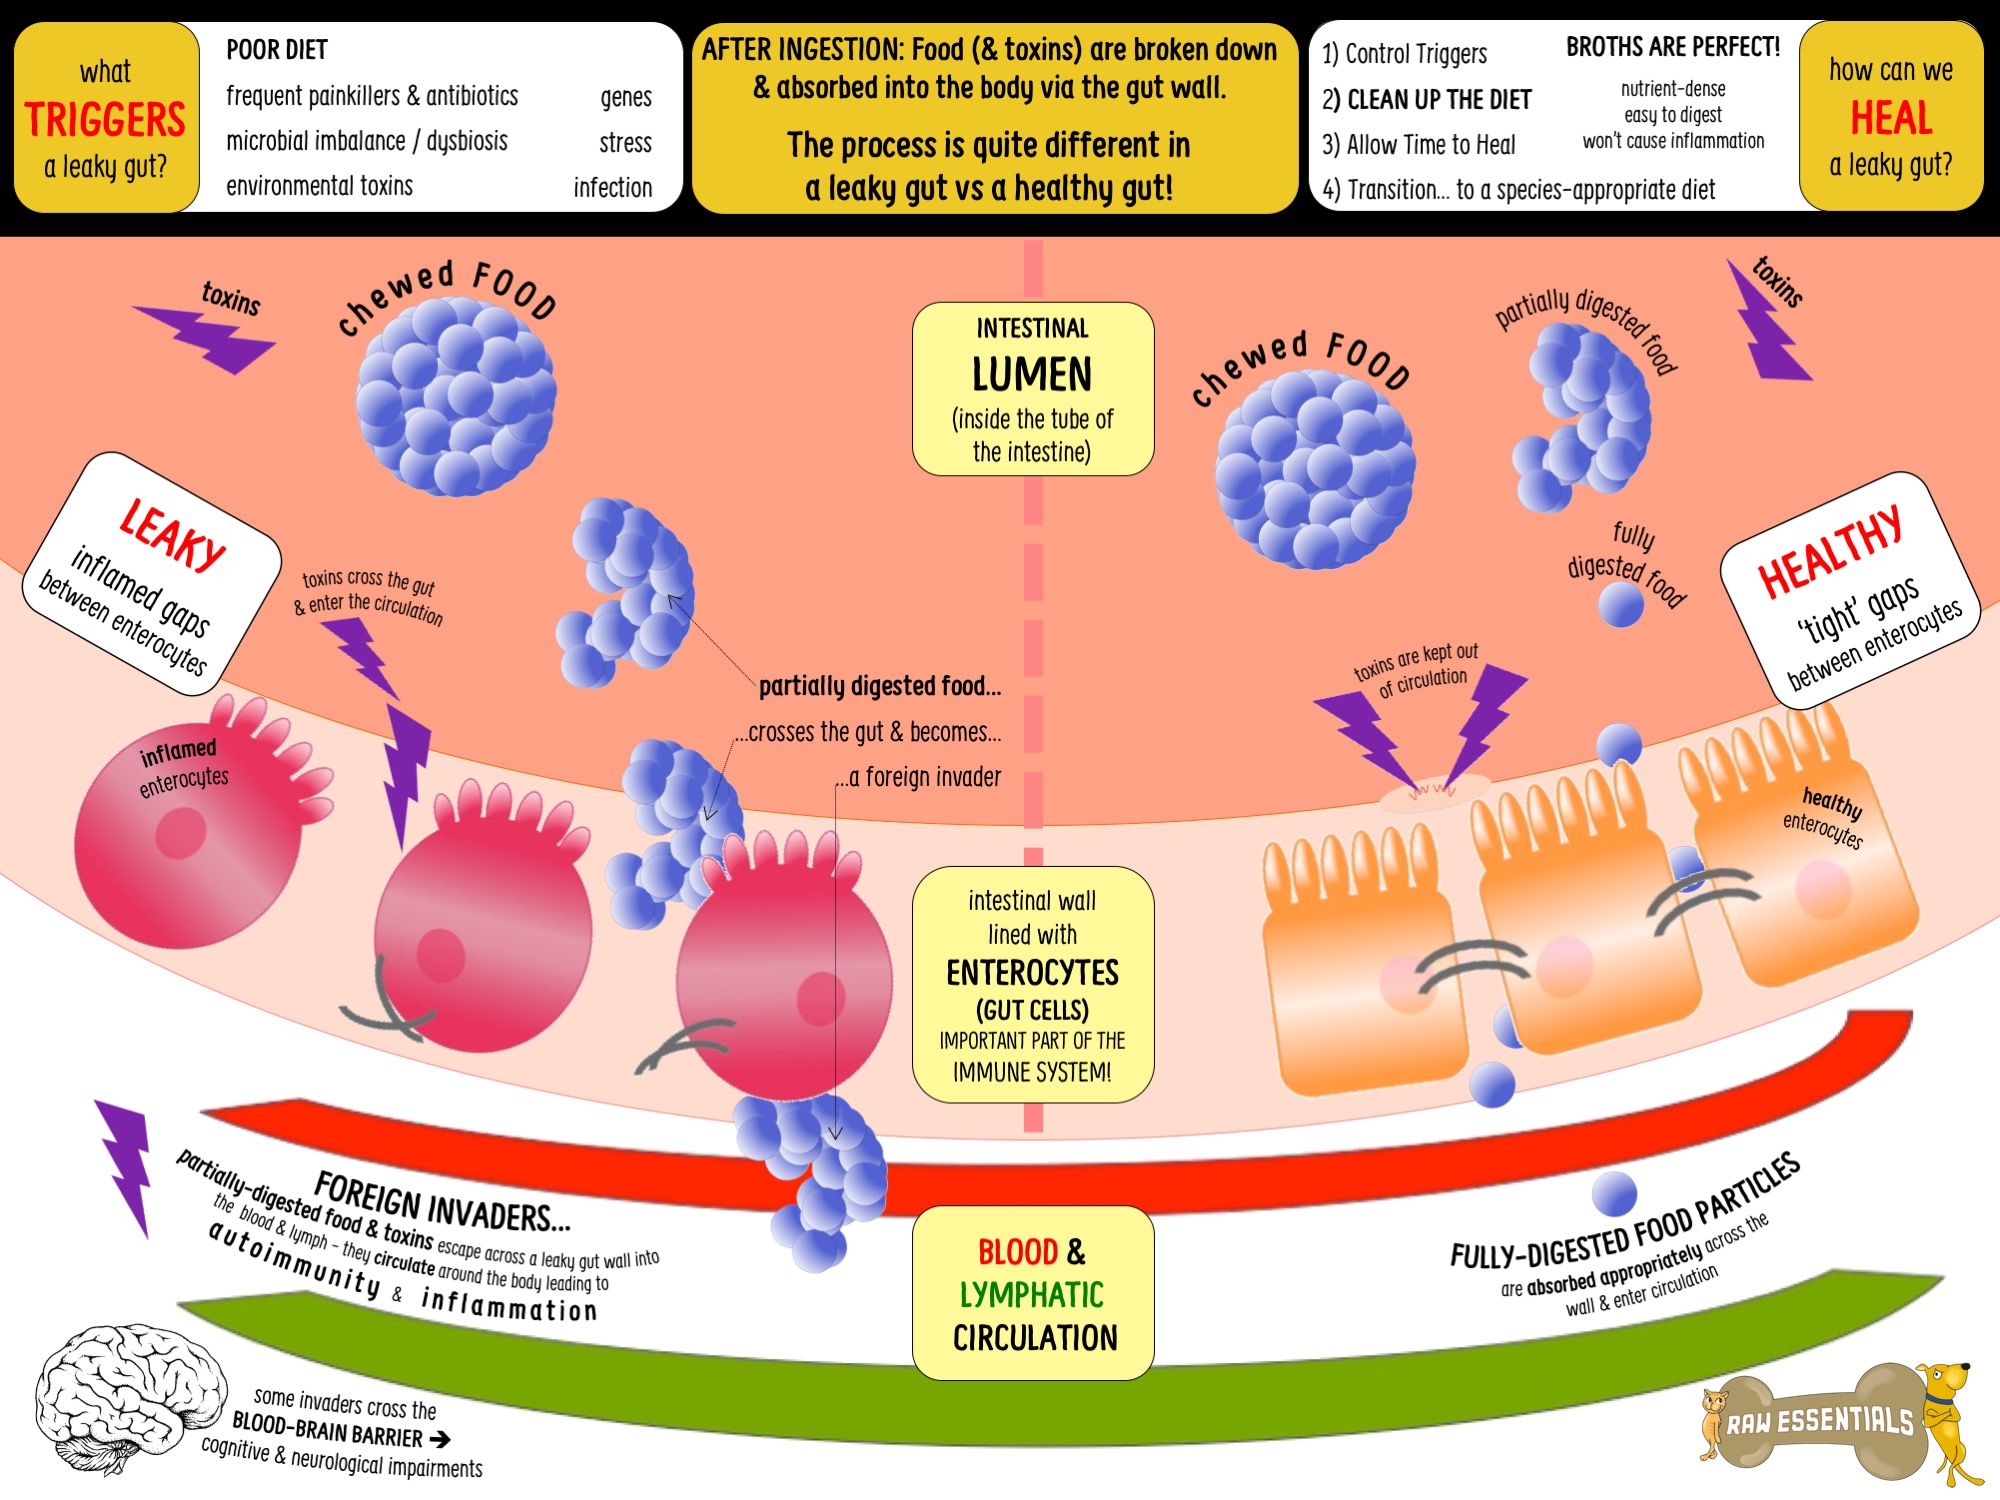 dysbiosis in the gut)